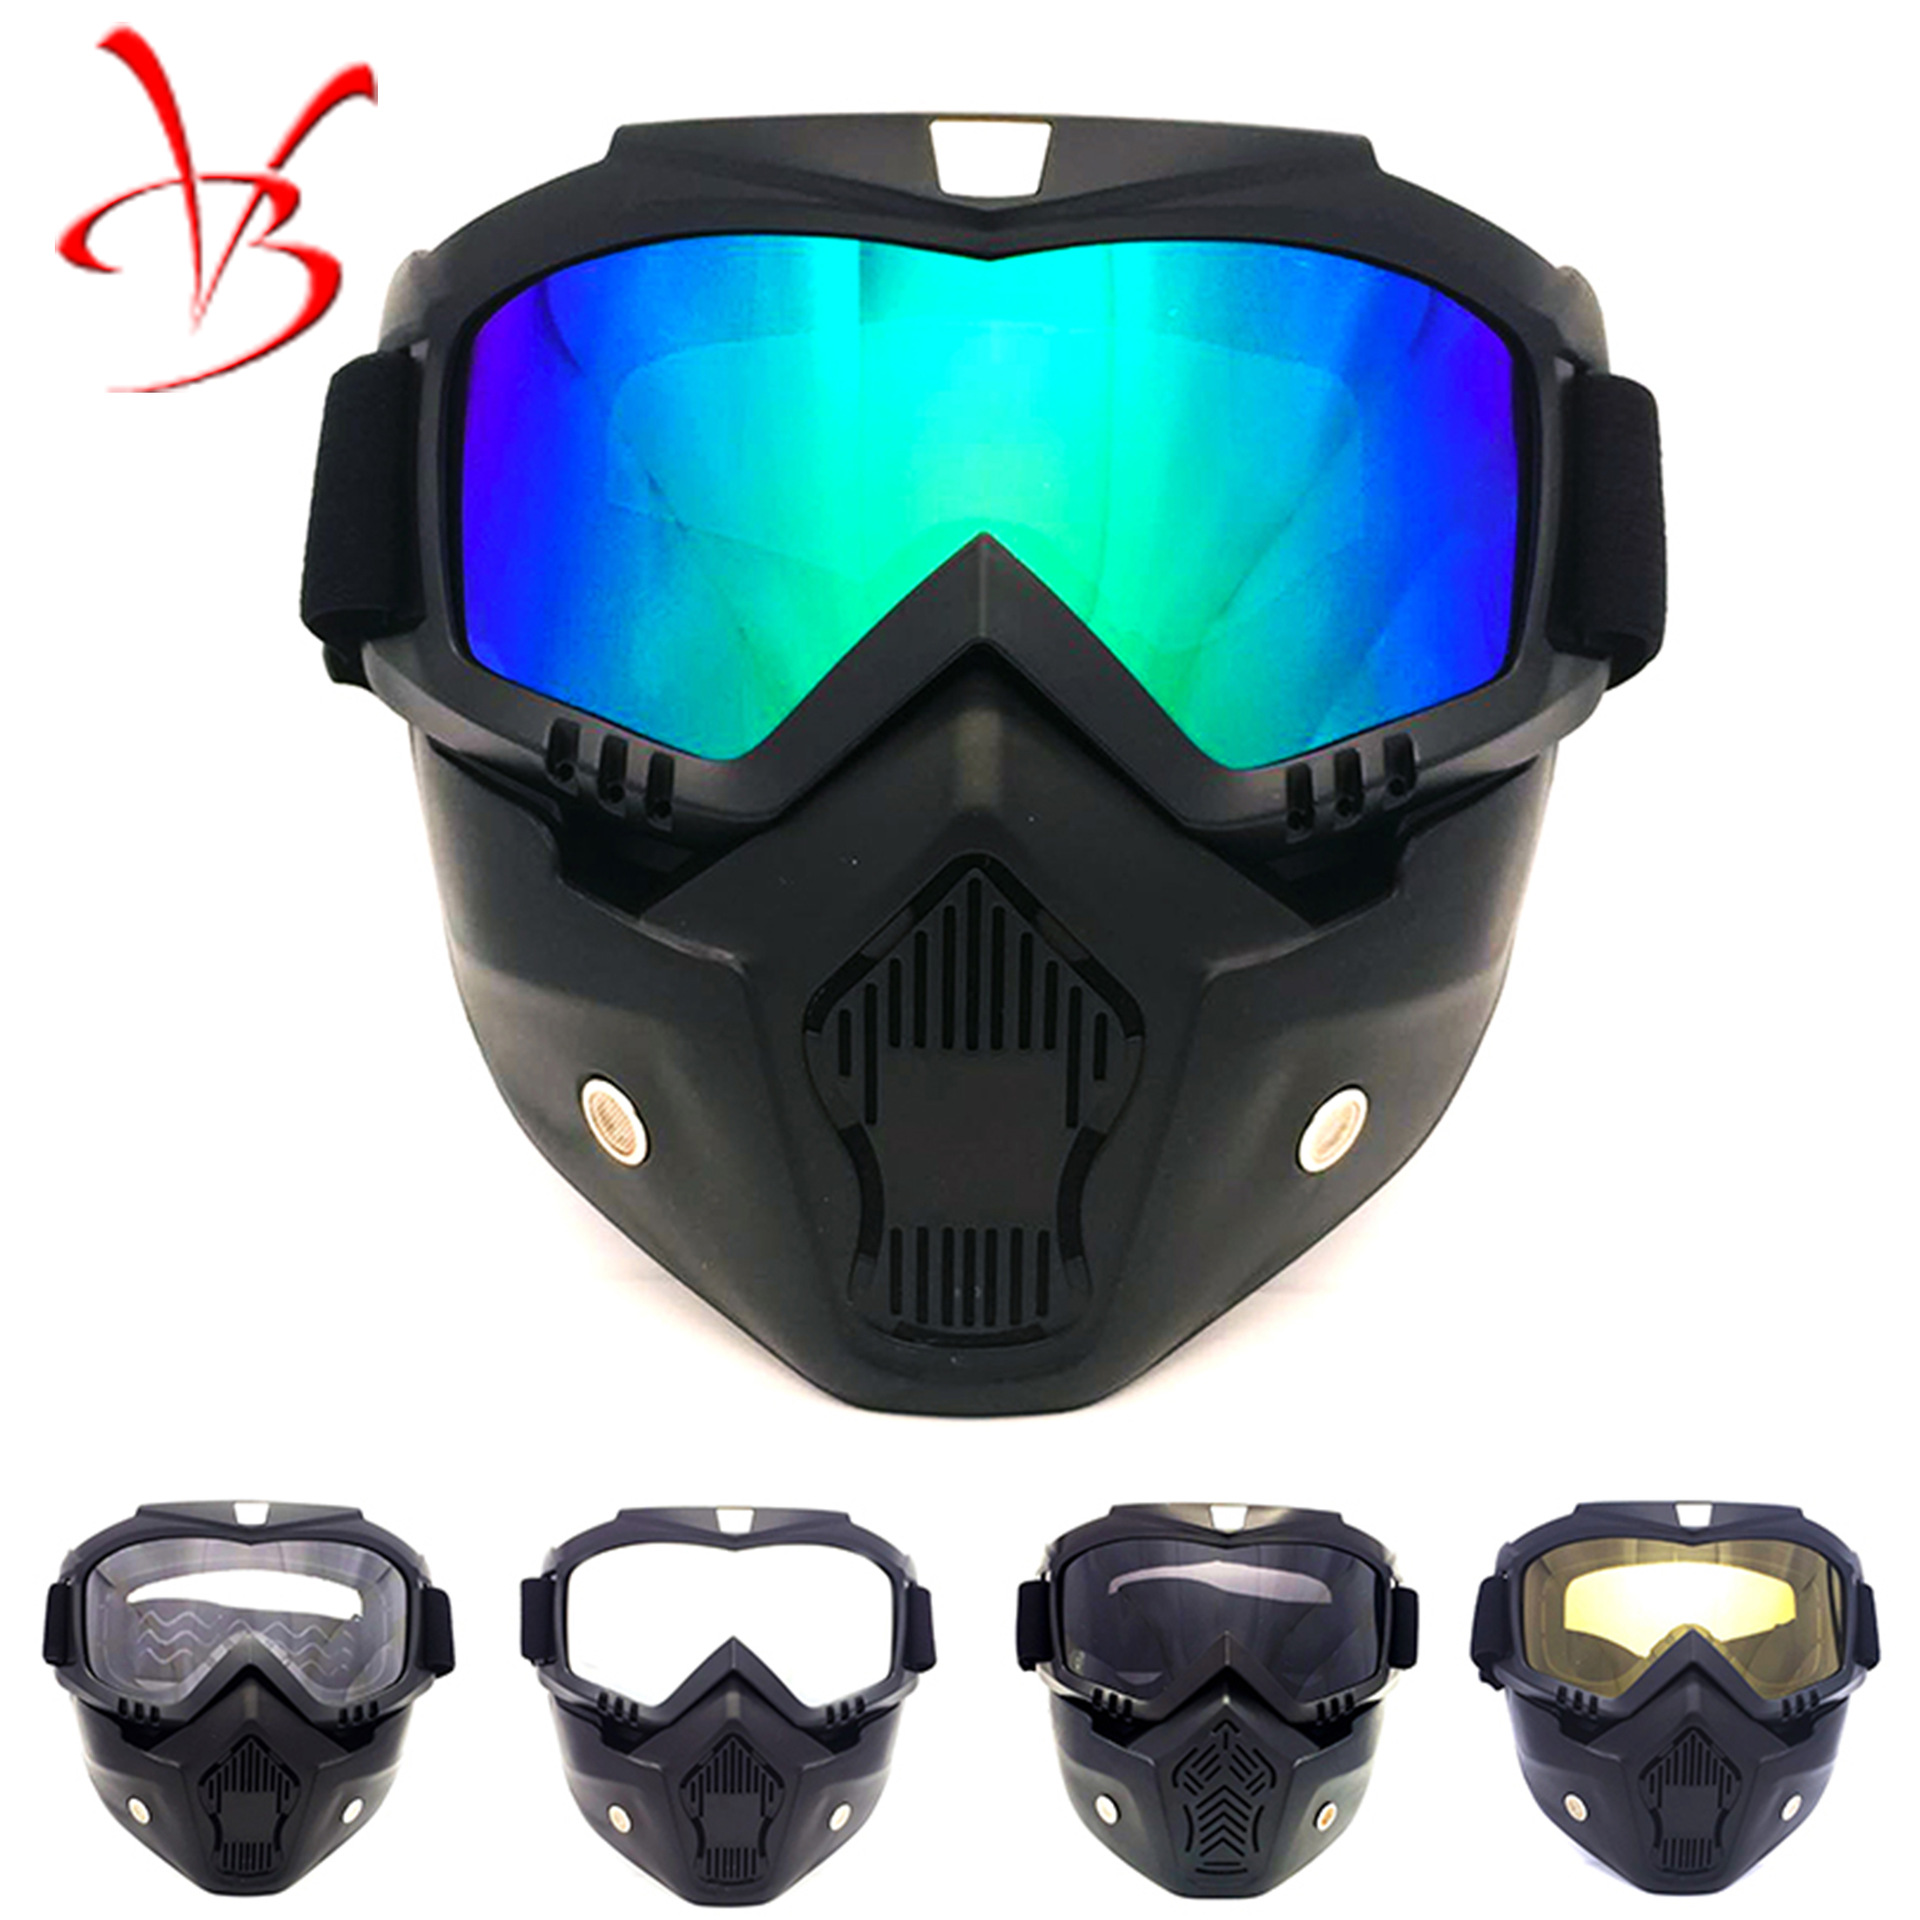 Harley Retro Mask Goggles Scrambling Motorcycle Race Car Eye-protection Goggles Outdoor Glasses For Riding Skiing